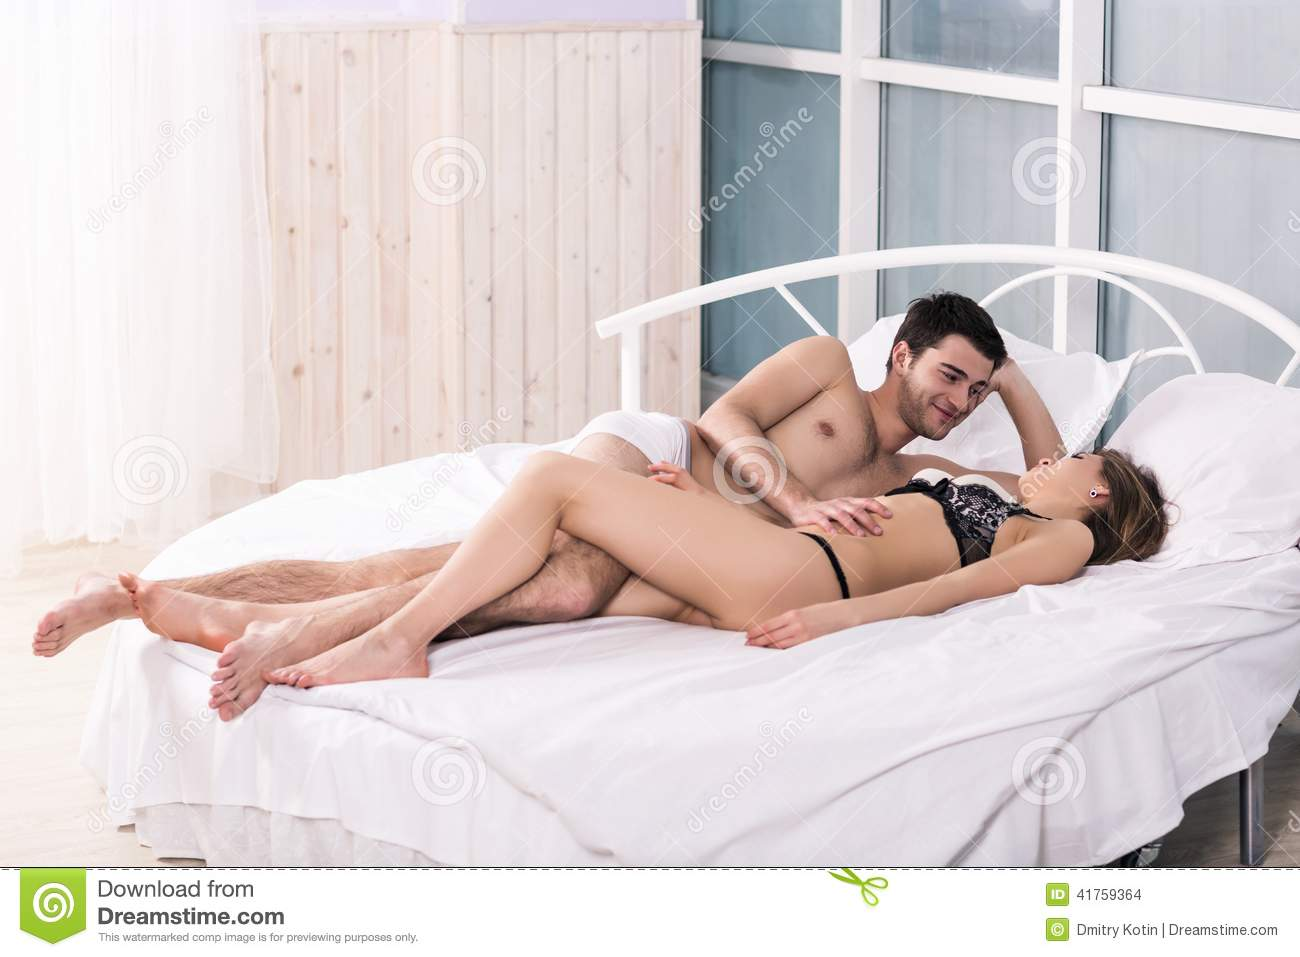 sex scene in bed